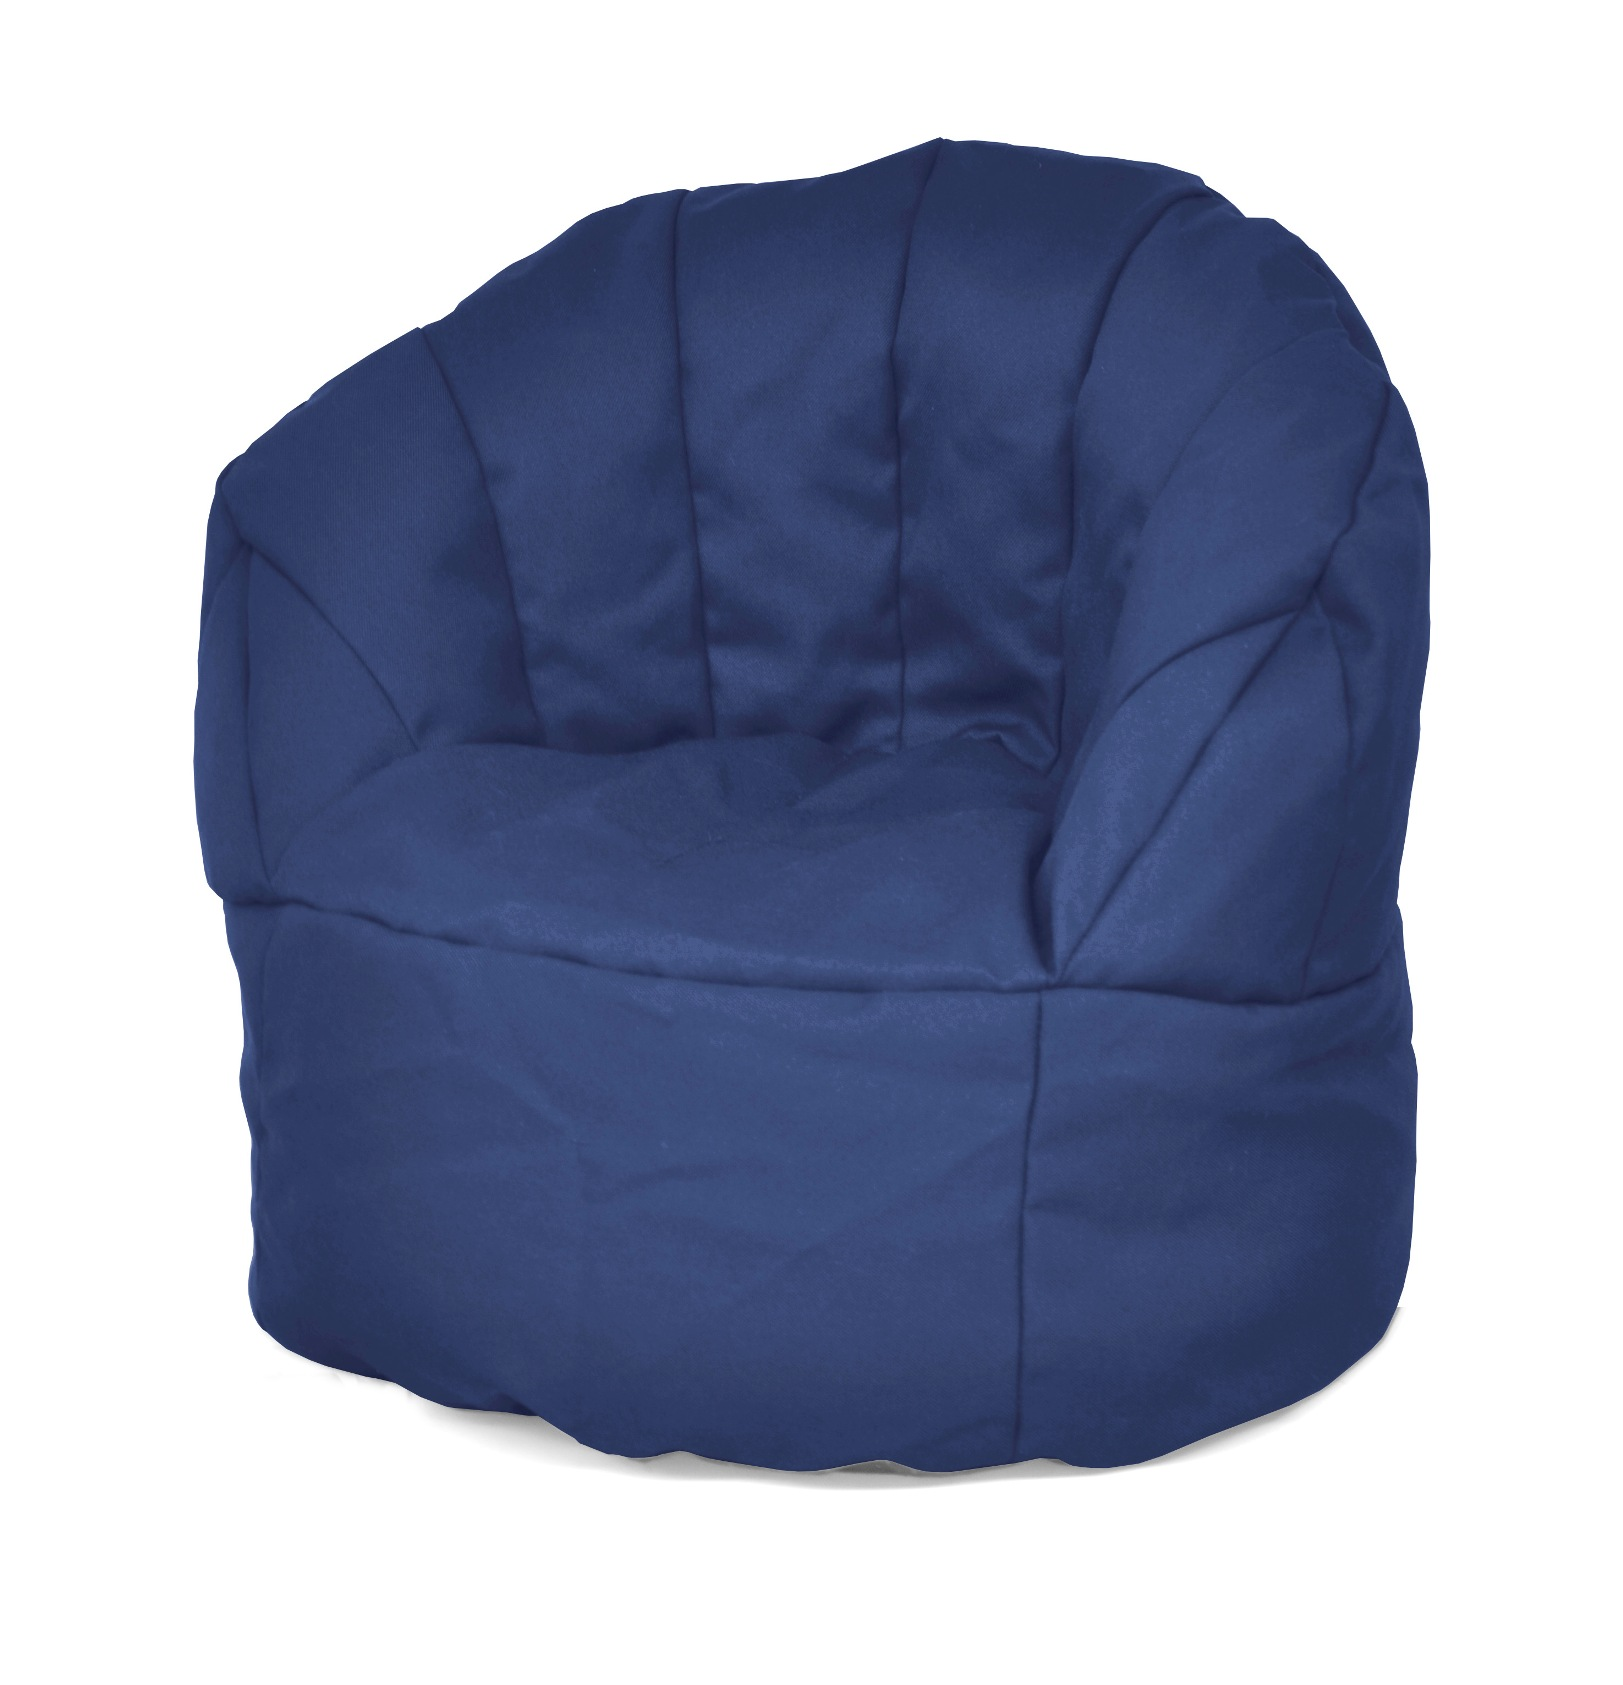 Bing Bag Chair